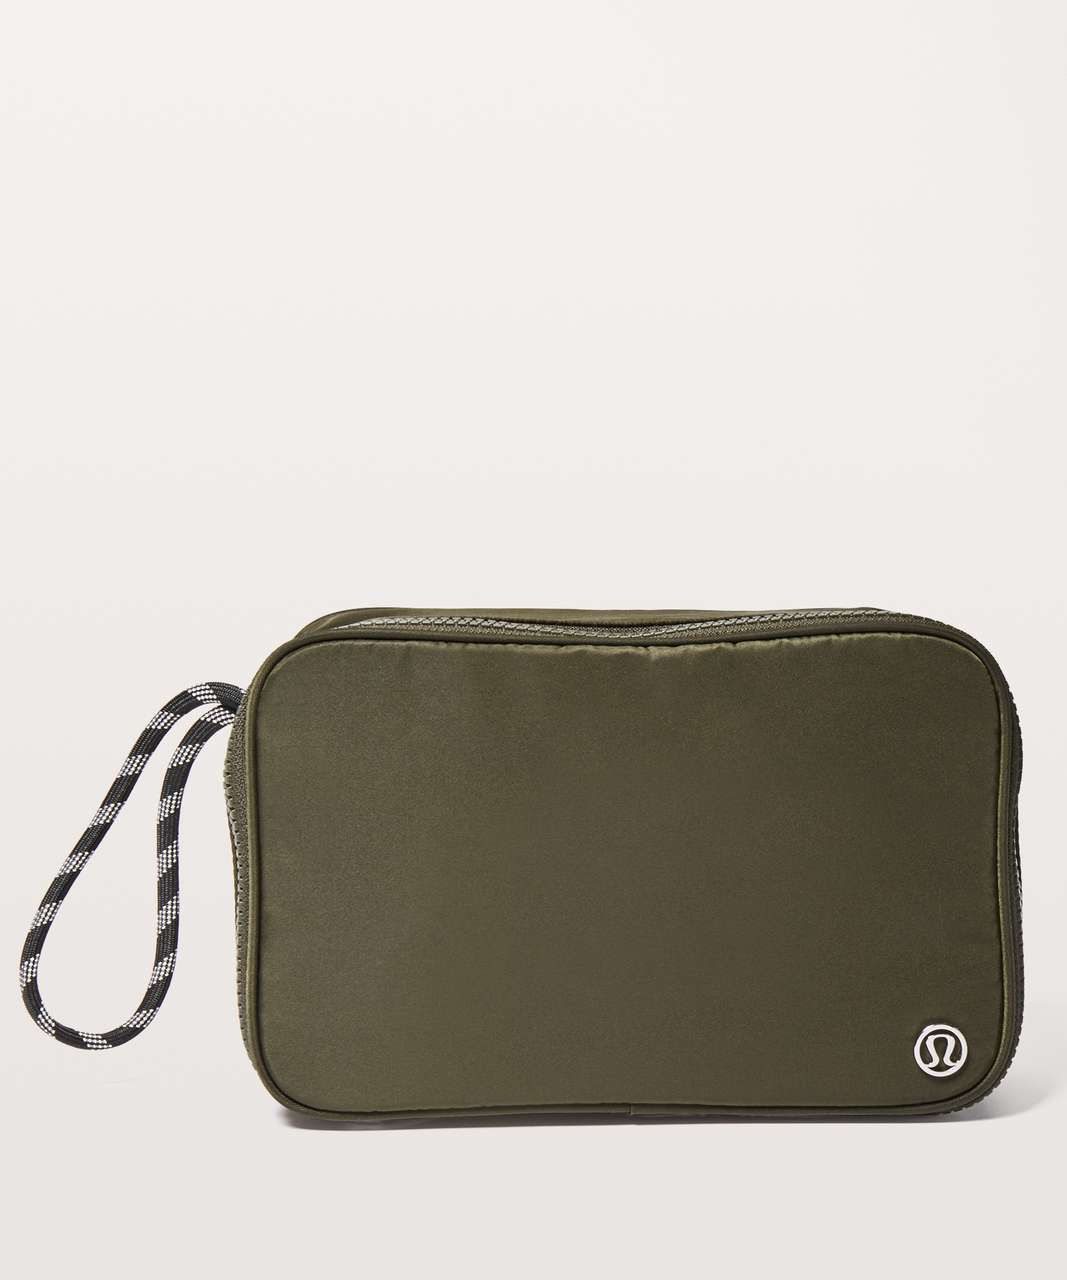 Lululemon Small Things Count Kit *4L - Dark Olive